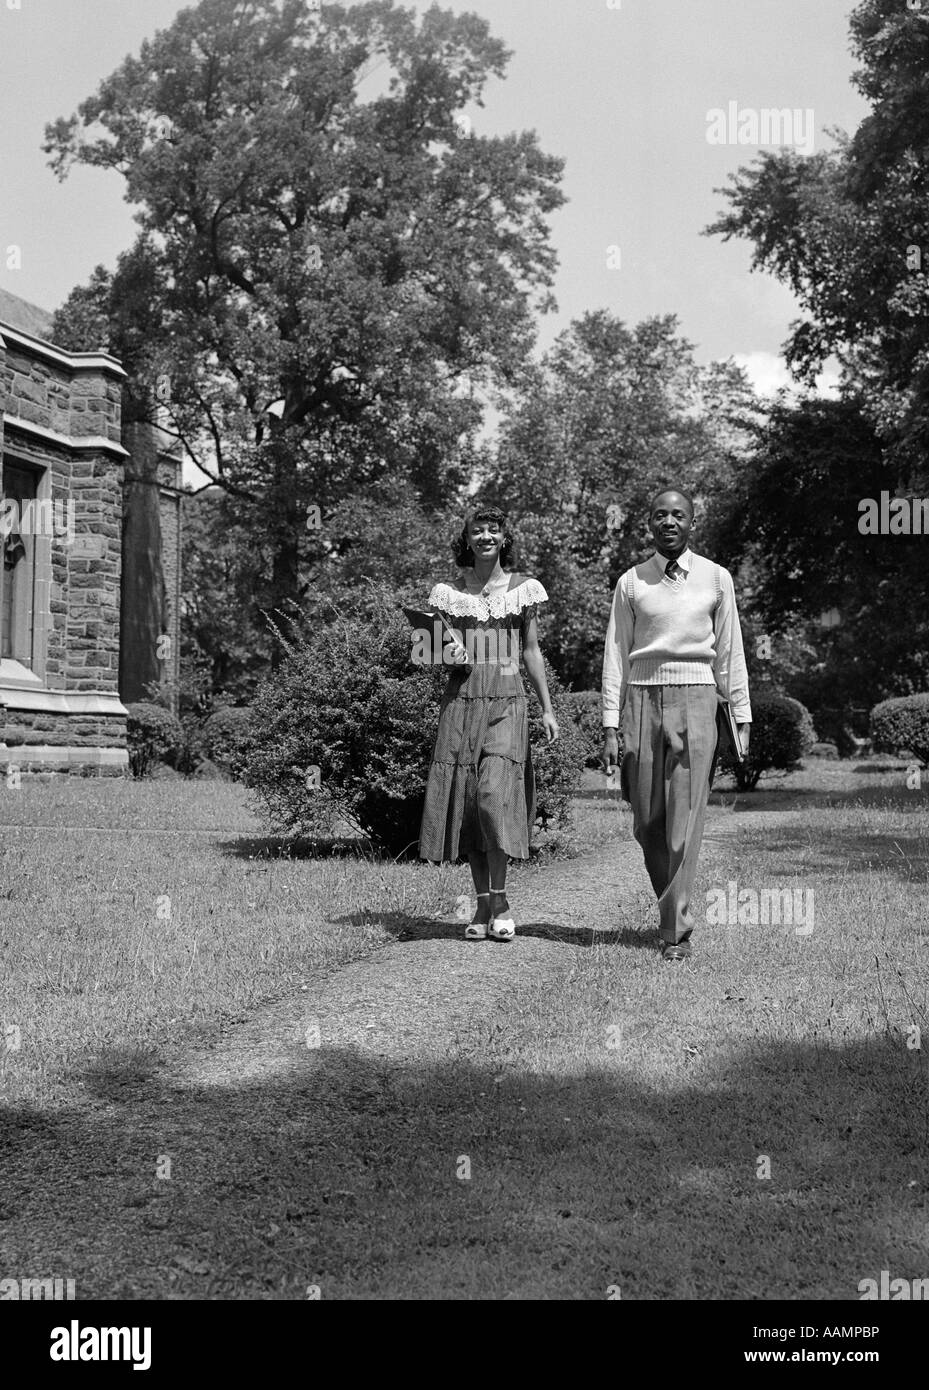 1940s 1950s AFRICAN AMERICAN COLLEGE COUPLE WALKING ON